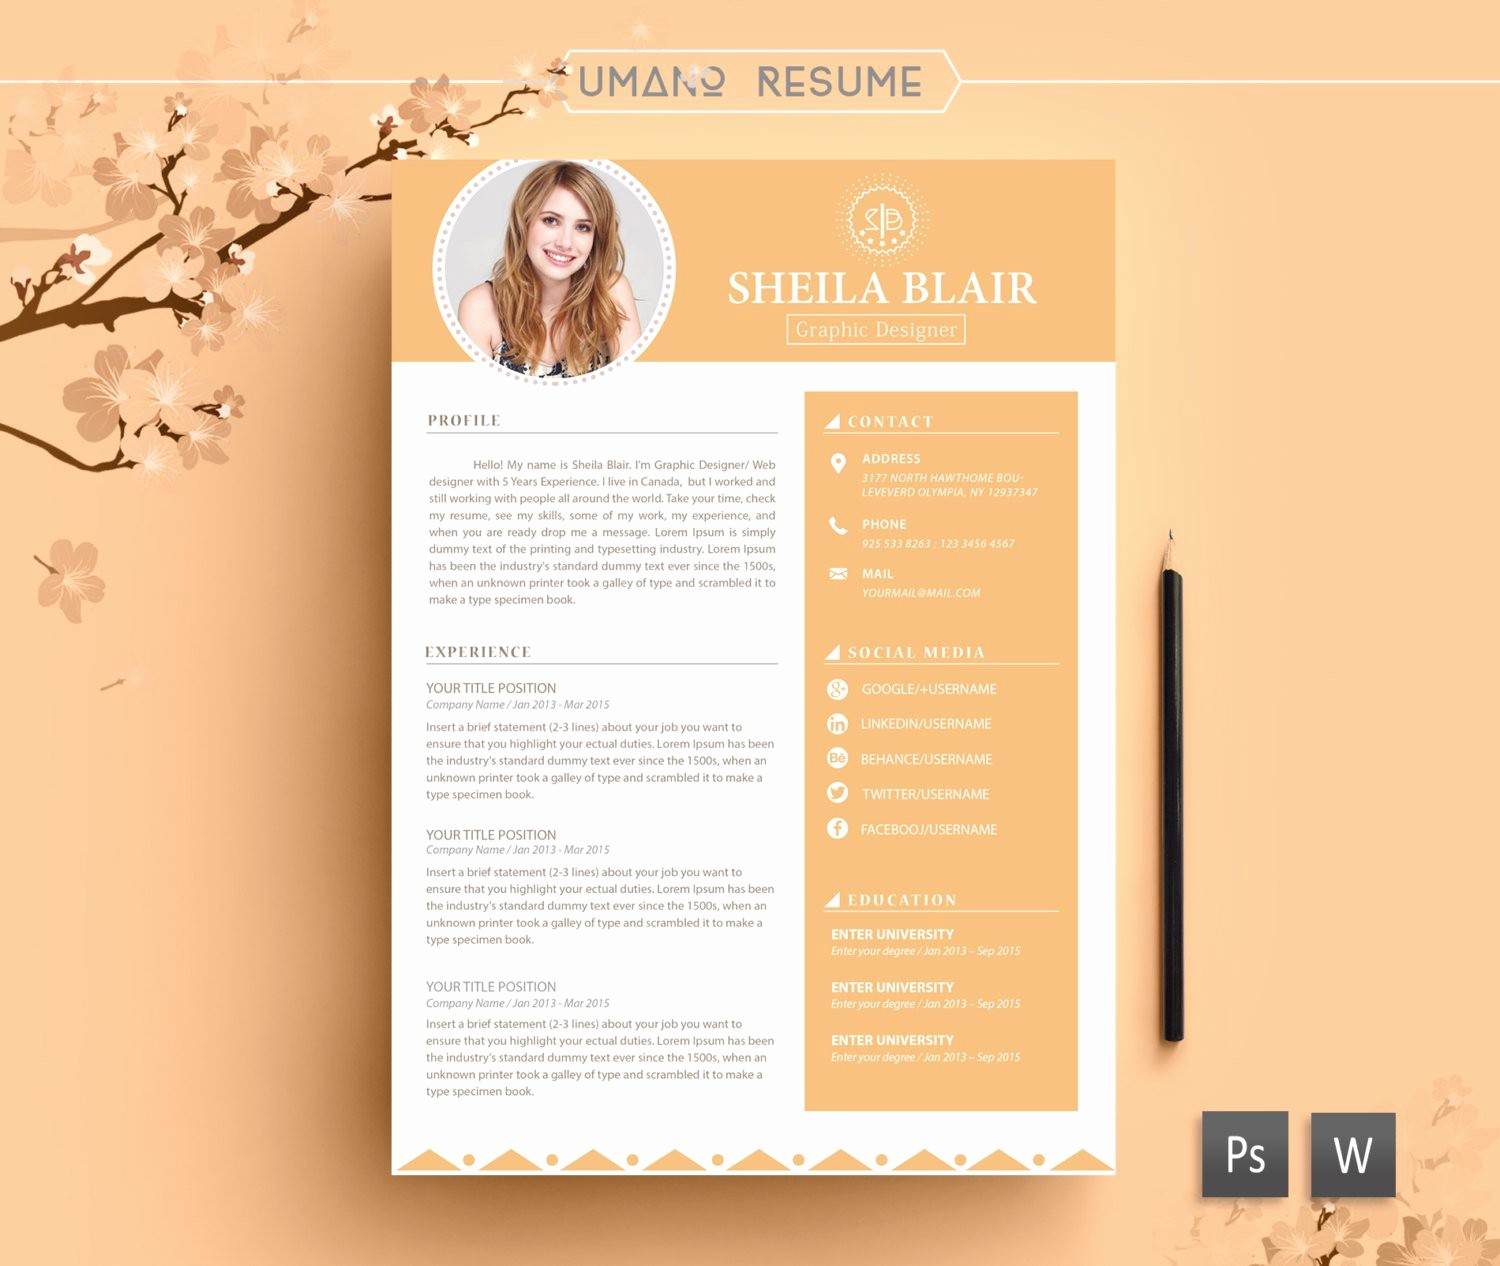 Templates for Cover Letters Free Best Of Resume Template Free Cover Letter for Word Ai Psd Diy